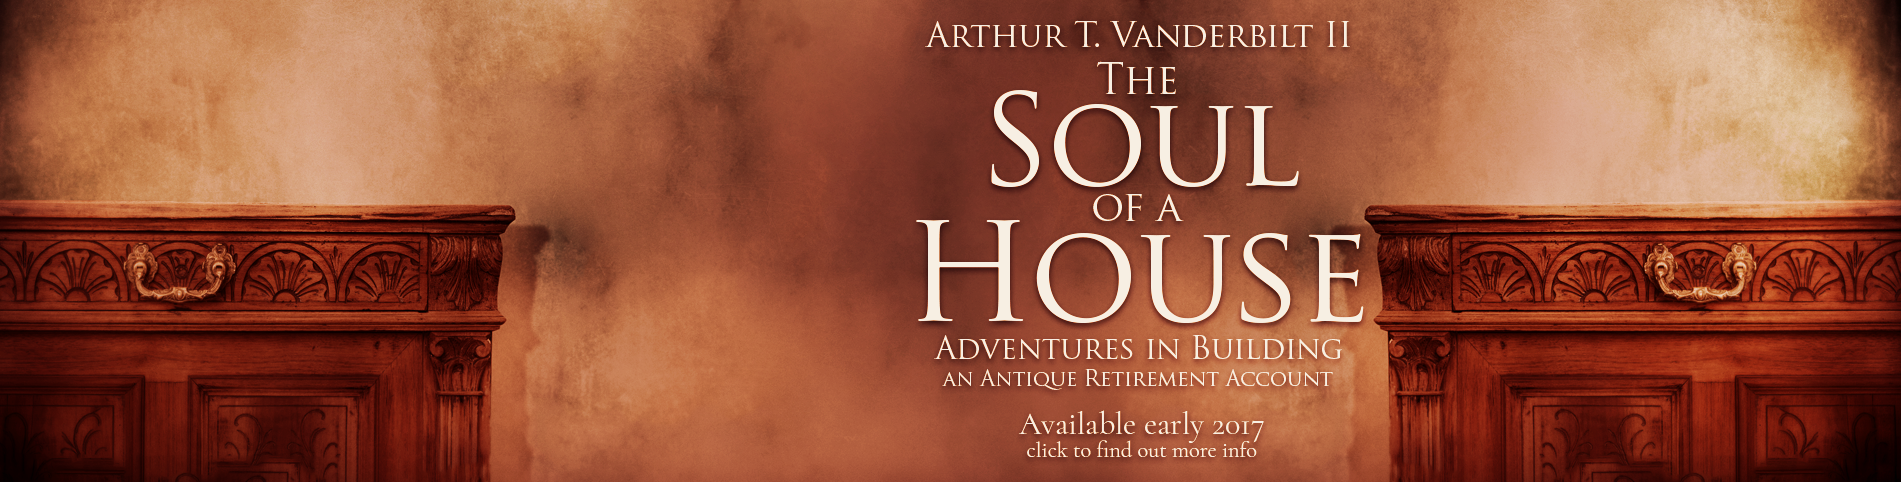 Soul Of A House: Adventures In Building An Antique Retirement Account